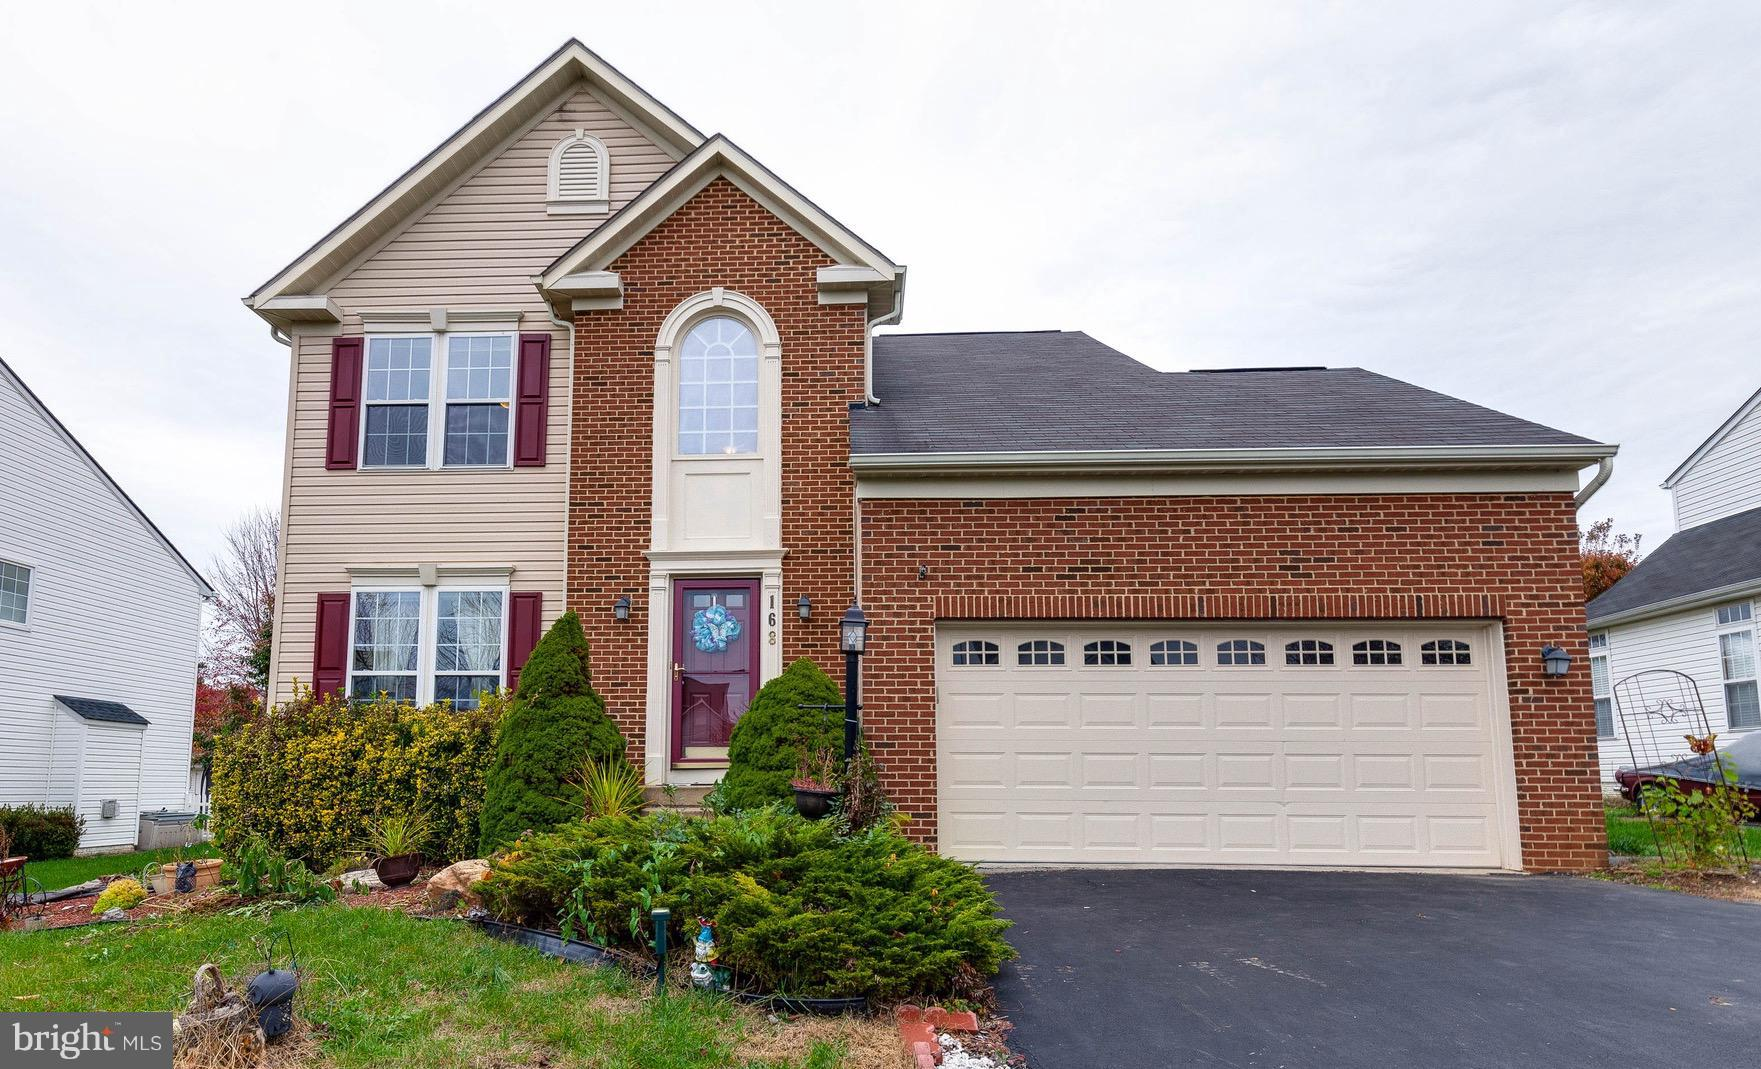 Gorgeous brick front Colonial in Breckenridge! Main level features hardwood floors, a large kitchen